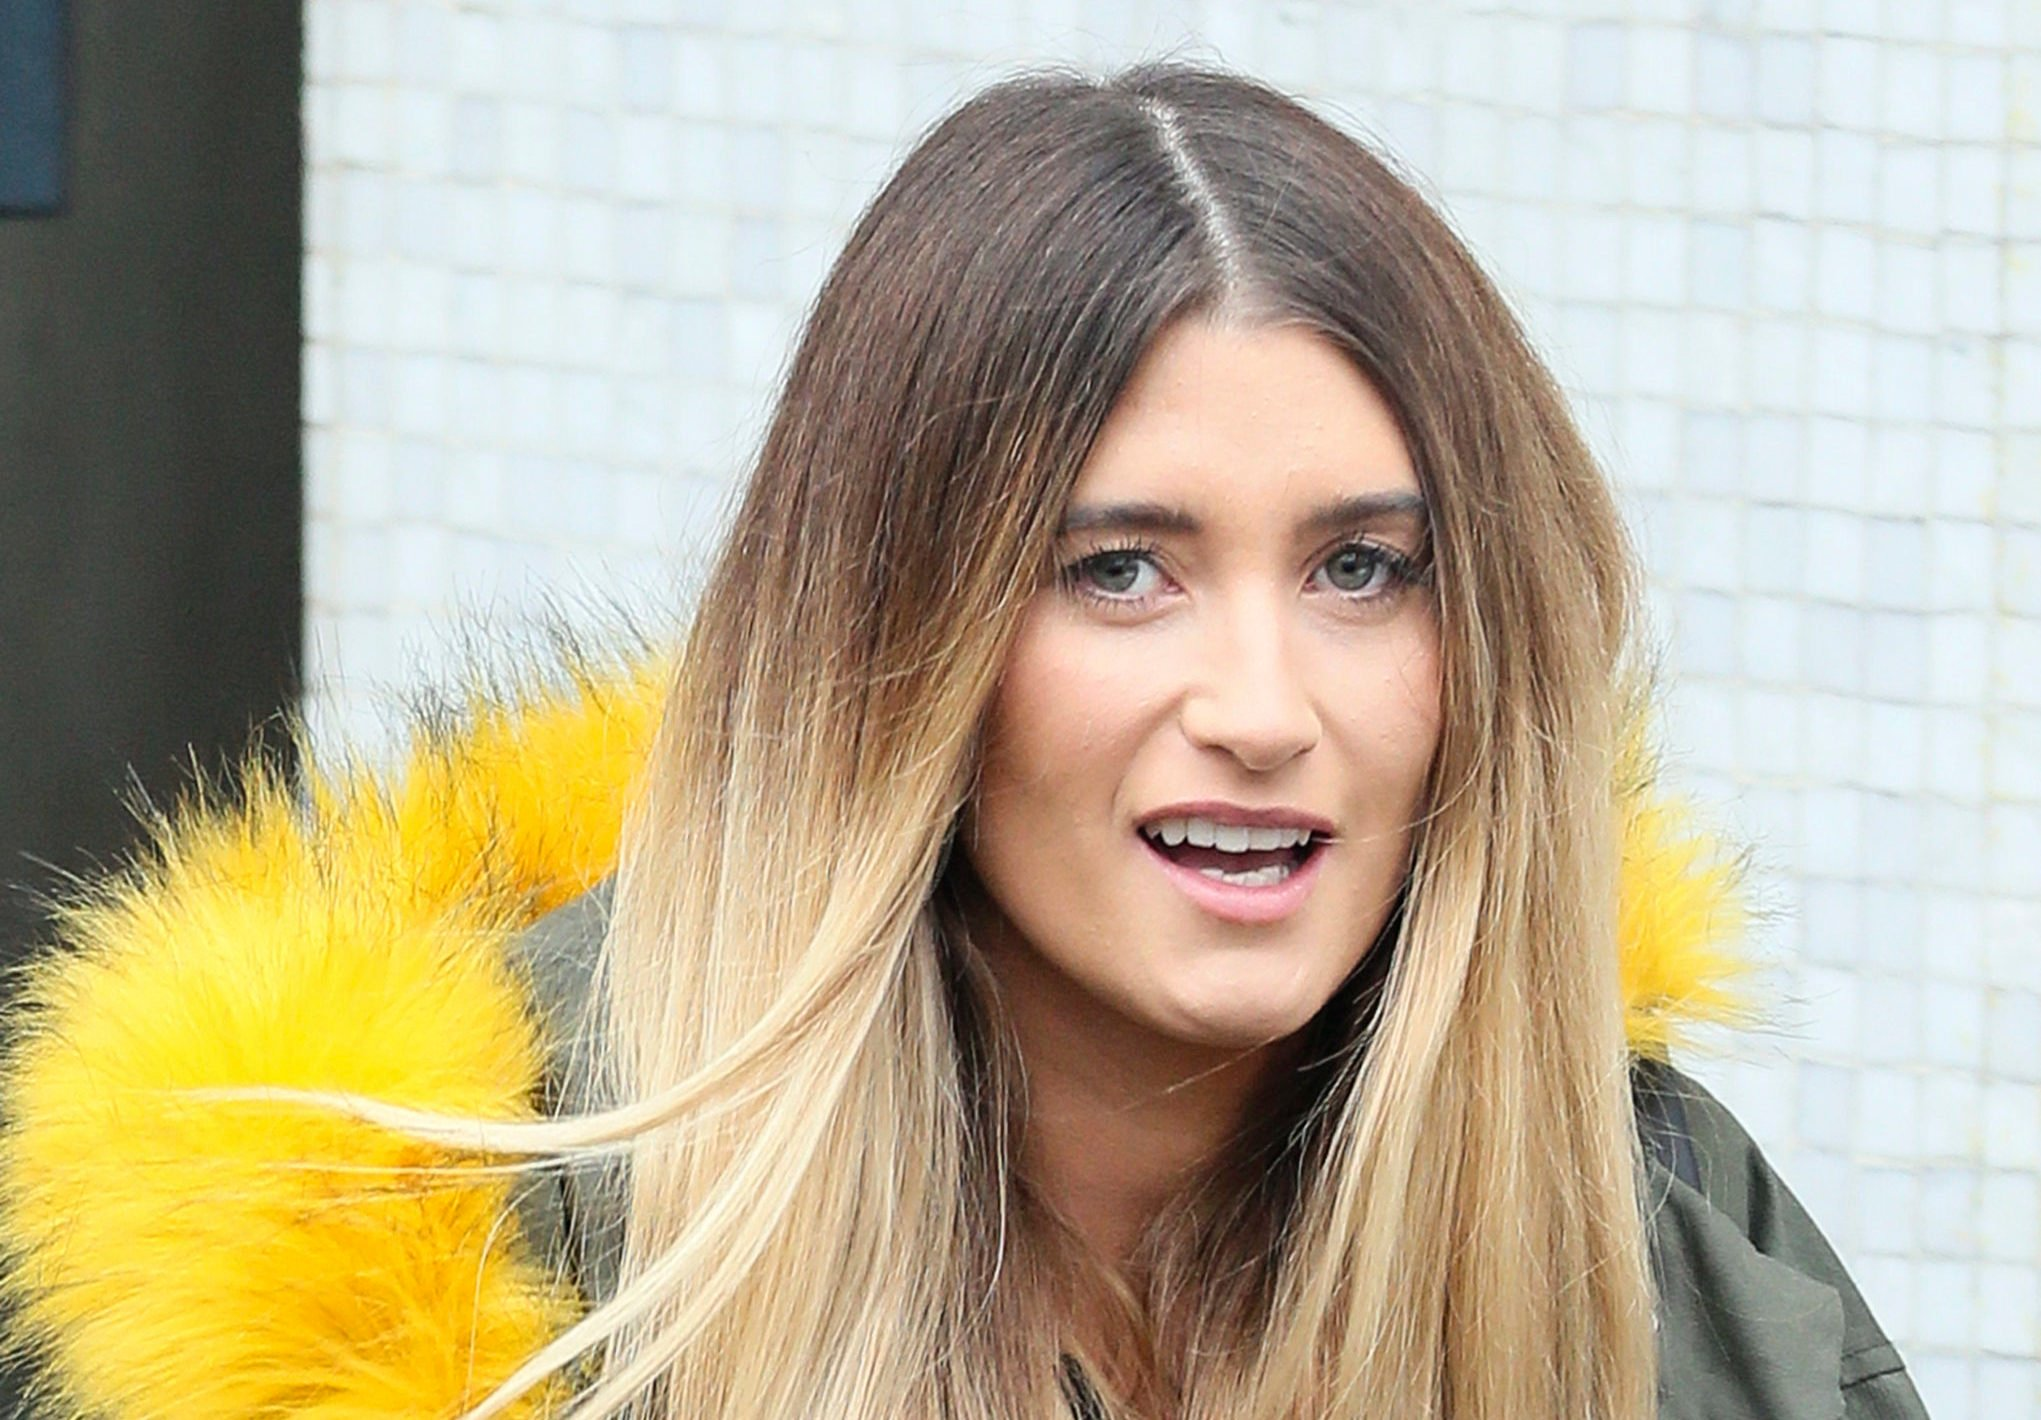 Emmerdale's Charley Webb joins TikTok and shows son Buster's acting talents